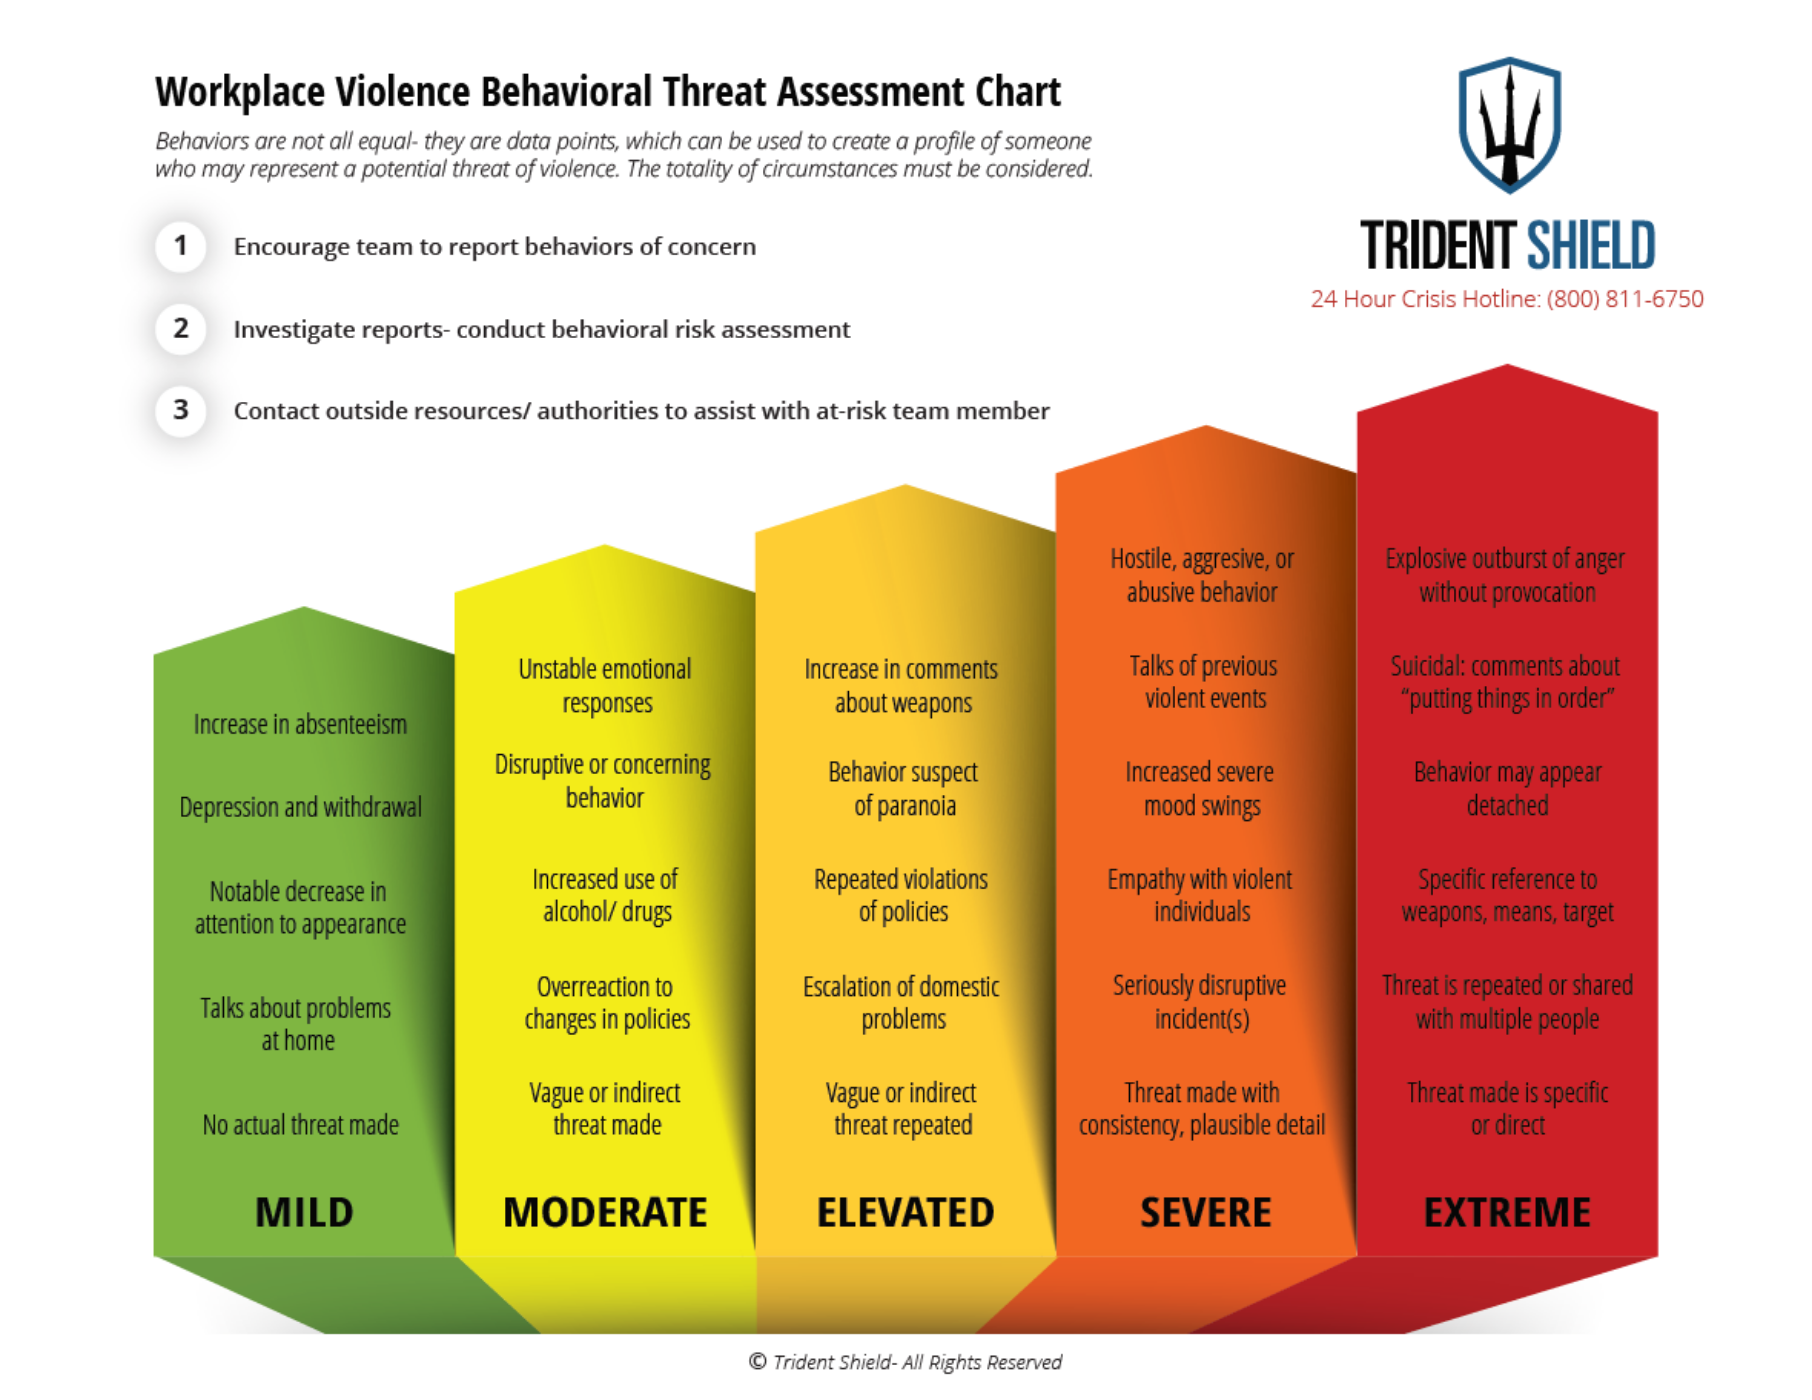 Threat Assessment Image